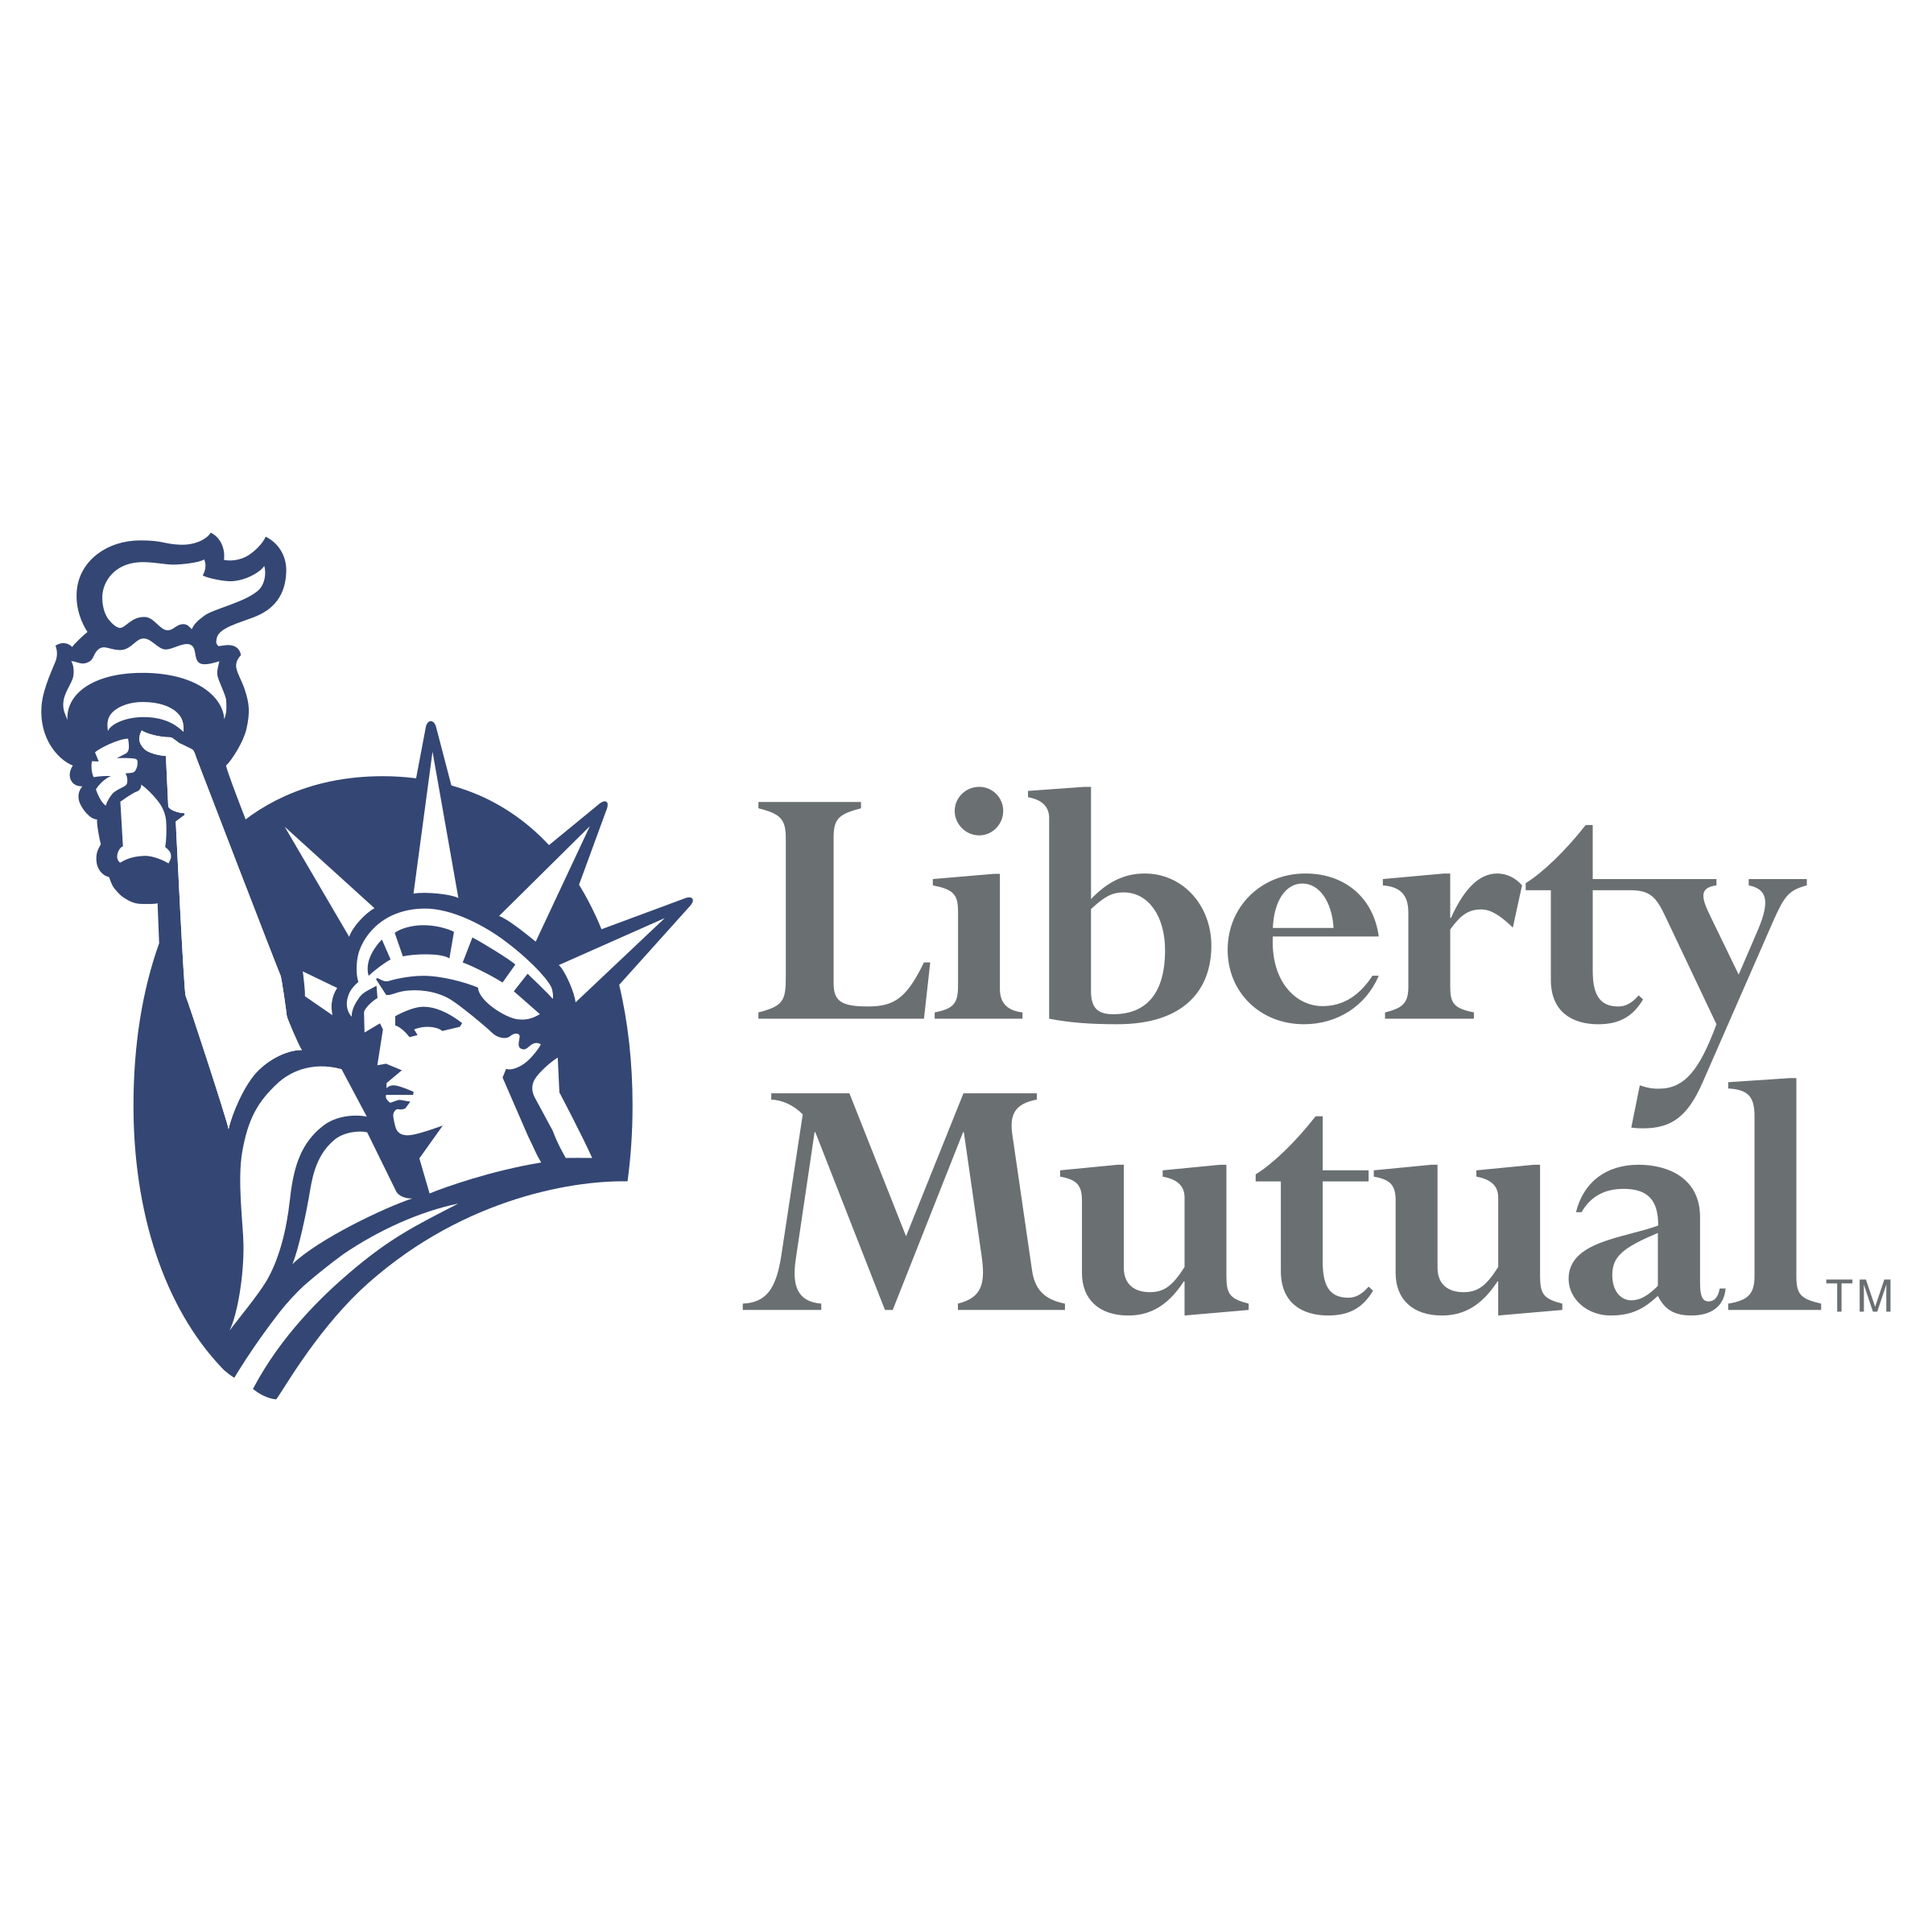 liberty-mutual-logo-png-transparent